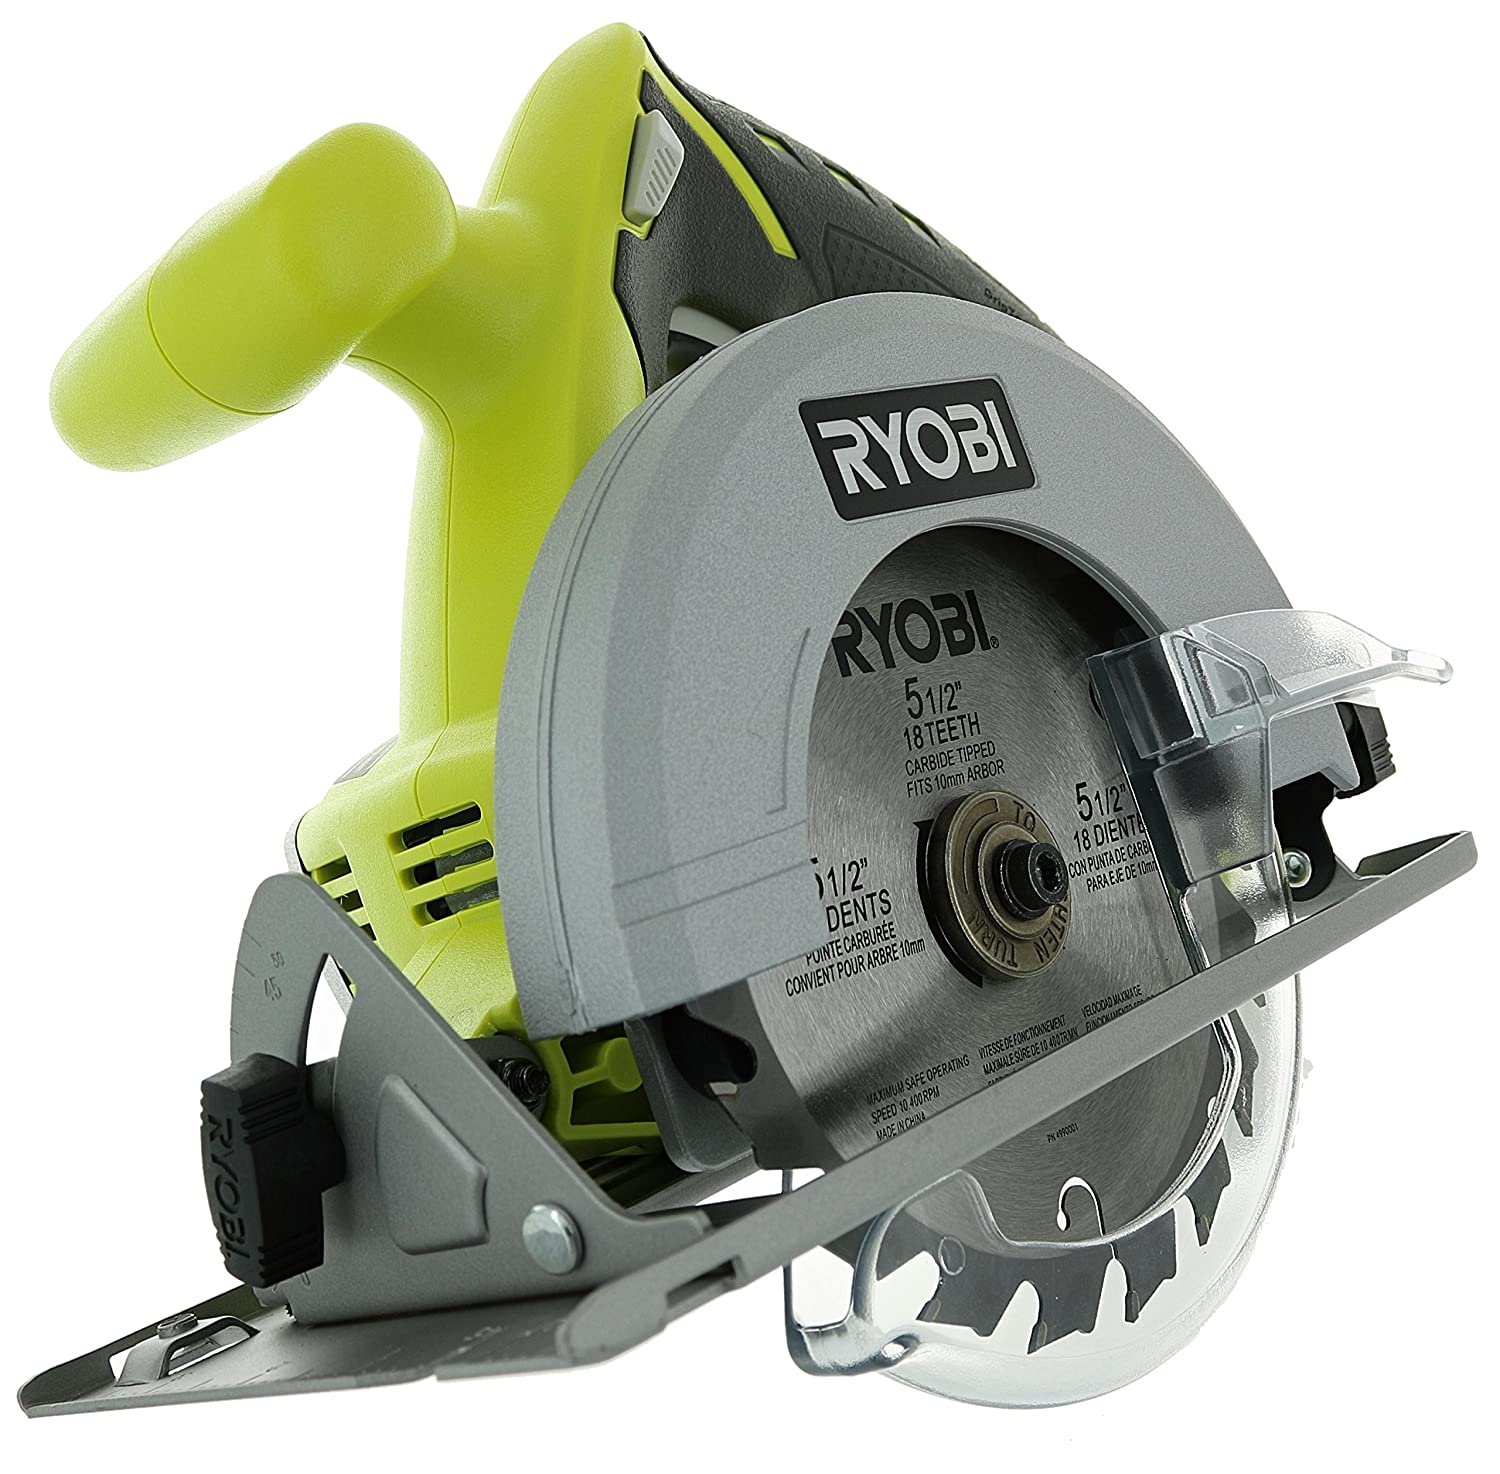 Ryobi P504G One 18 V Lithium Ion Cordless 5 1 2 Inch Circular Saw w Carbide Tip Blade Battery Not Included, Power Tool Only